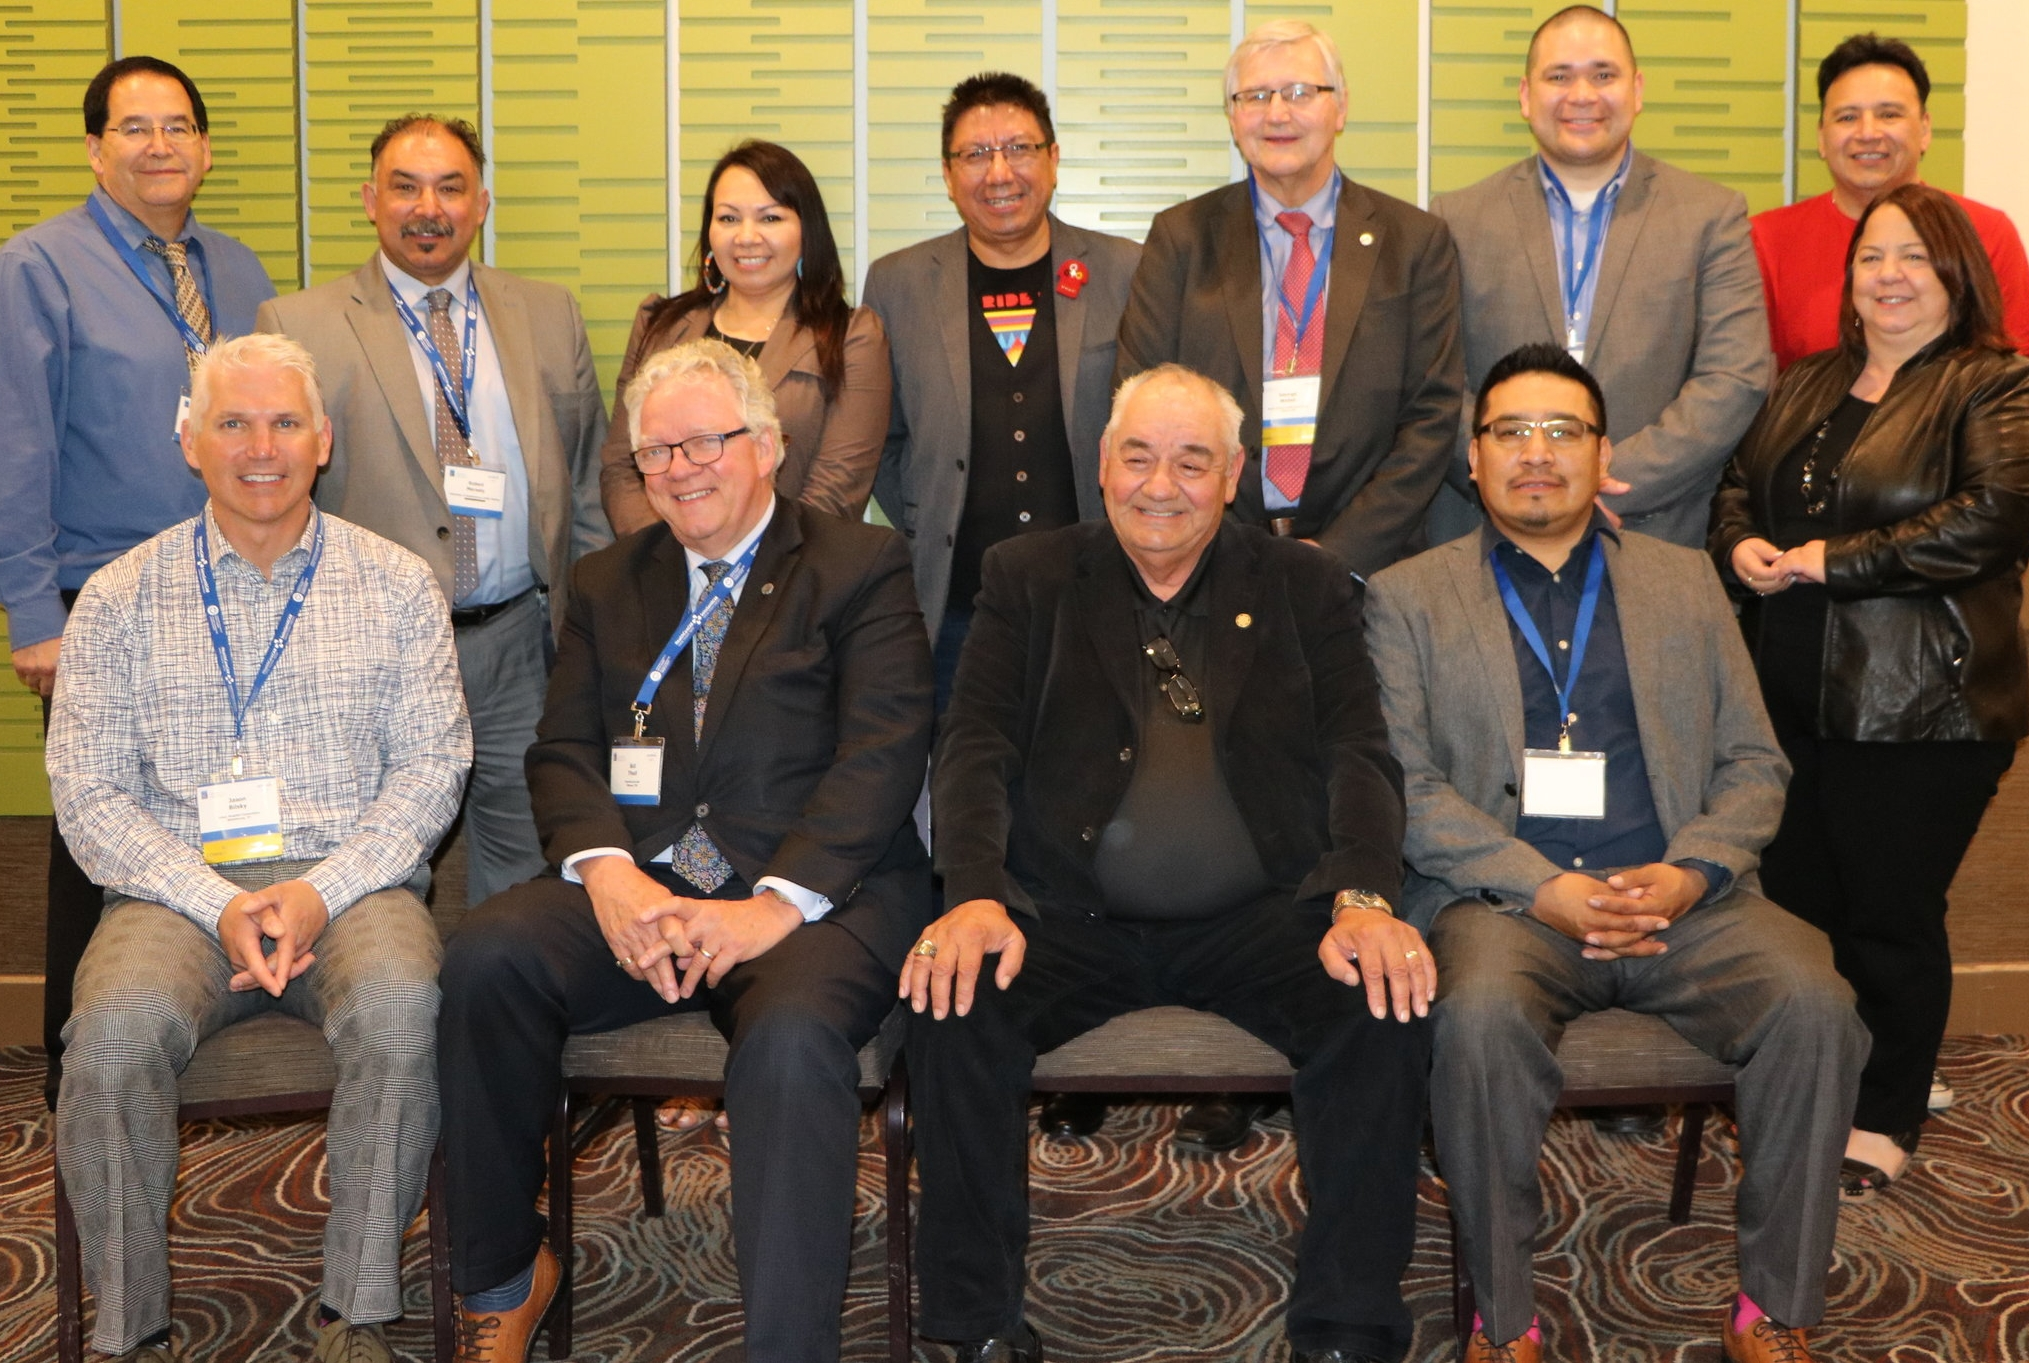 The Indigenous Health Alliance, led by Vice-Chief Robert Merasty (Federation of Sovereign Indigenous Nations), Grand Chief Sheila North (Manitoba Keewatinowi Okimakanak), Grand Chief Alvin Fiddler (Nishnawbe Aski Nation) with members of the HealthCareCAN Board at the 2016 Great Healthcare Debate.